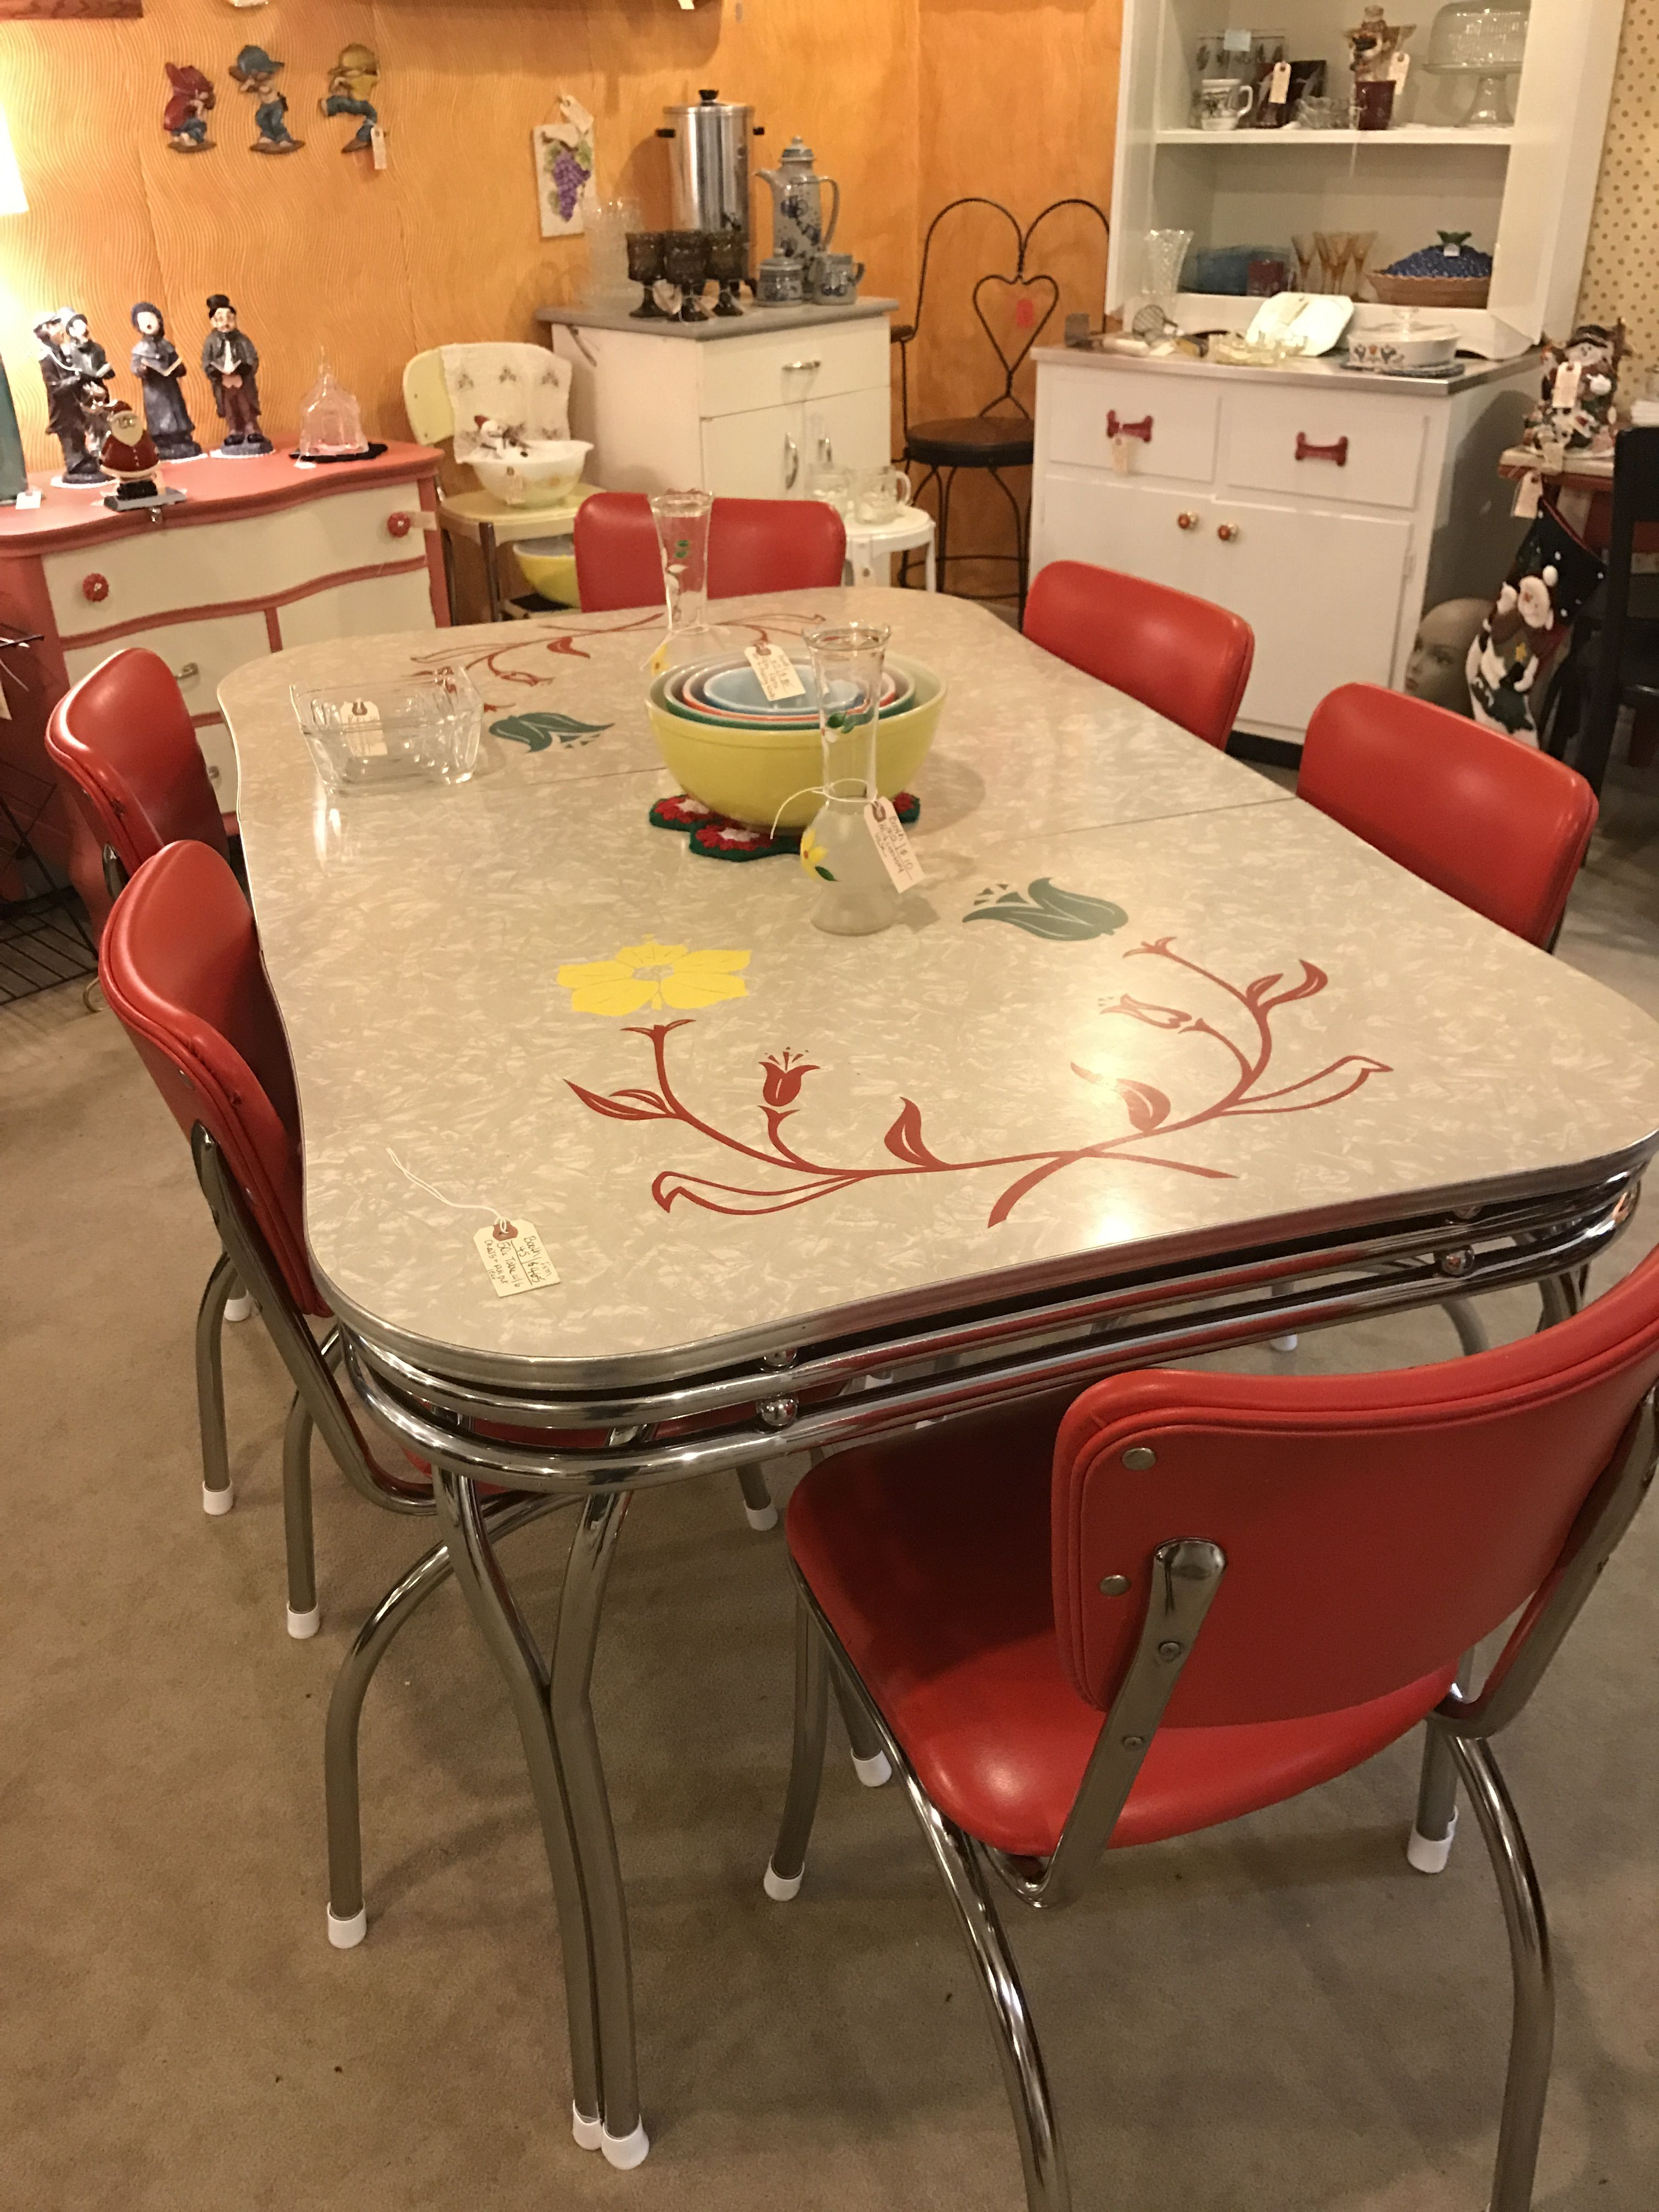 1950s formica kitchen table and chairs design layout beautiful vintage tables in 2019